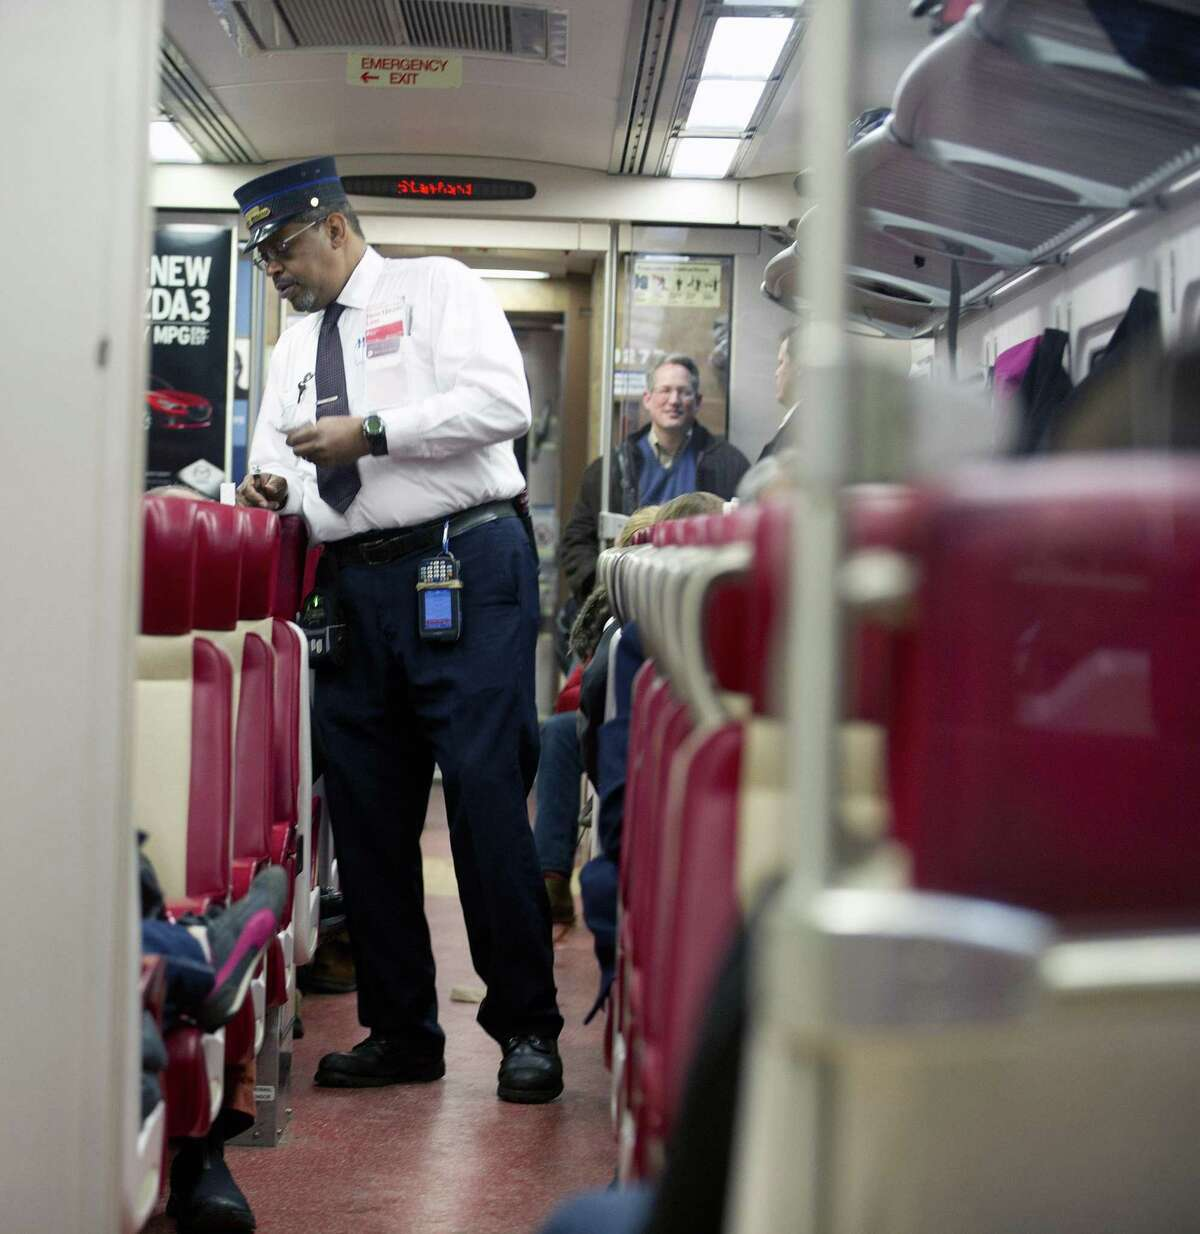 In a file photo, a conductor takes tickets on a Metro-North train. Gov. Dannerl P. Malloy announced Wednesday that all Connecticut train lines now have an added safety system called Positive Train Control. However, the automatic-stop function is not finalized for the possible case of two trains headed toward each other on the same track.